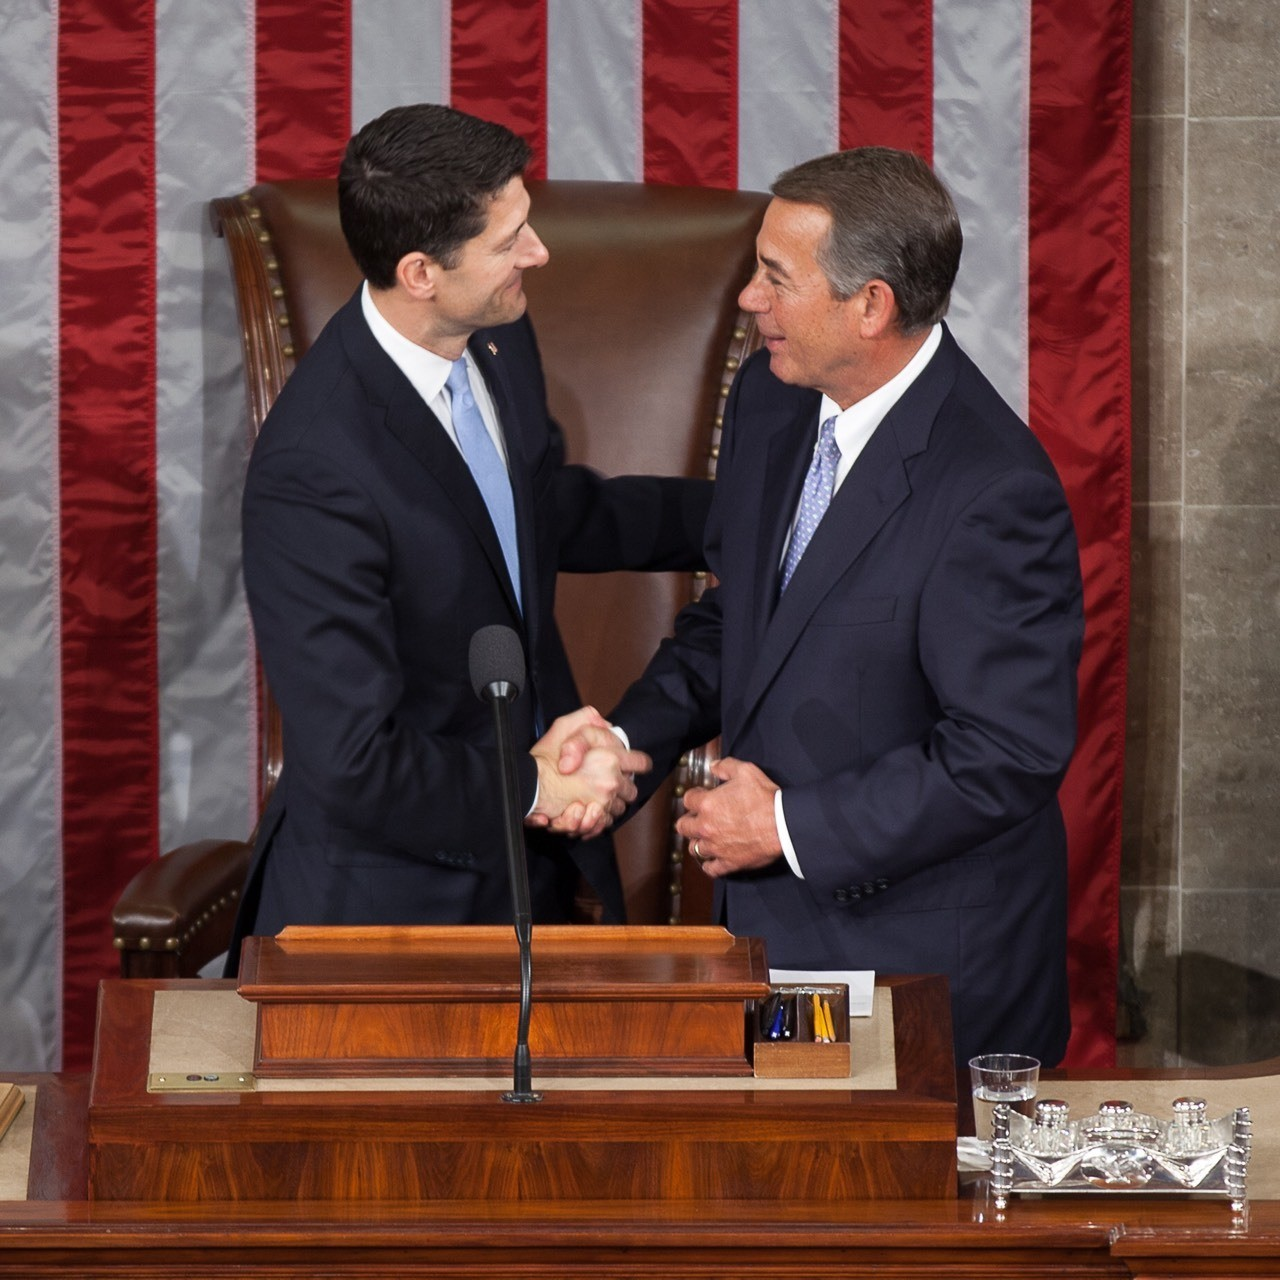 Congratulations Speaker Ryan. I know you will serve with grace & energy.